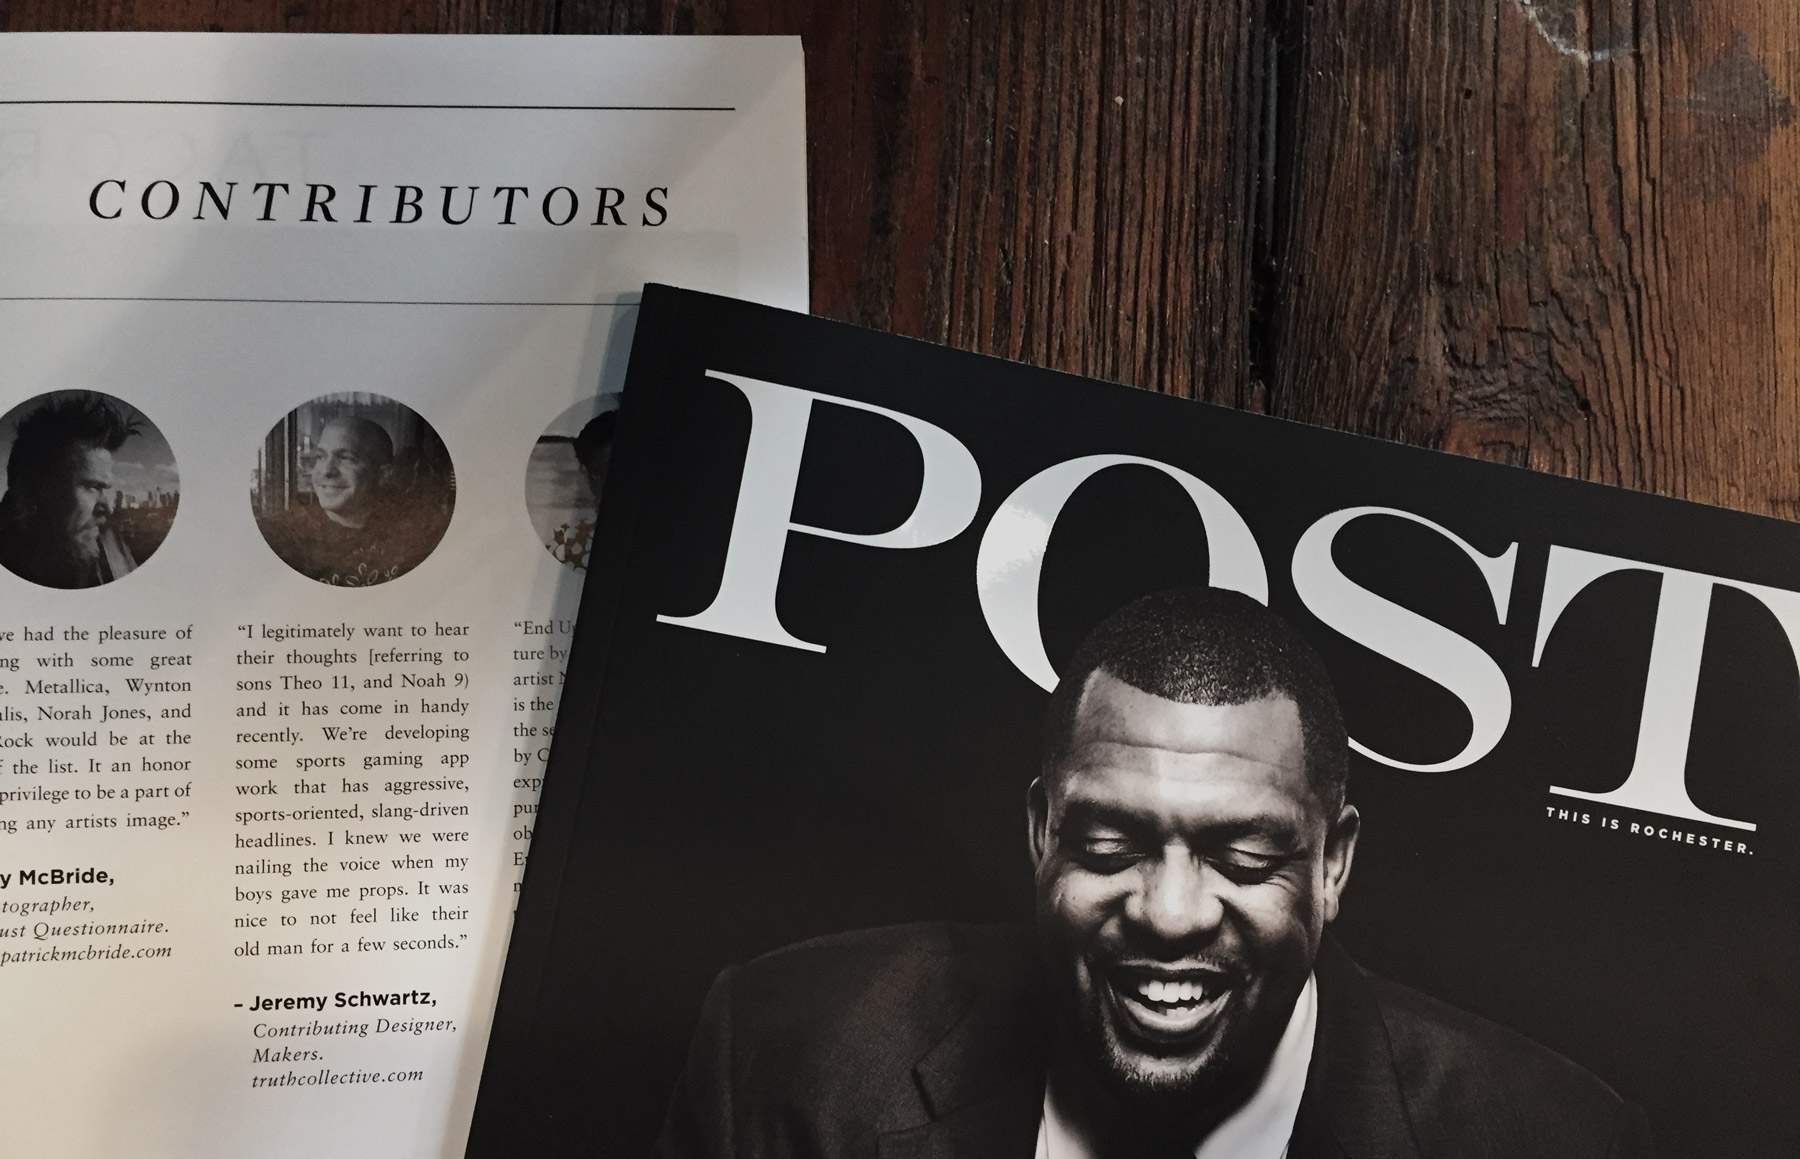 POST Magazine's March/April 2016 issue is out. Look for it on news stands now — or in the residence at The White House (true story).